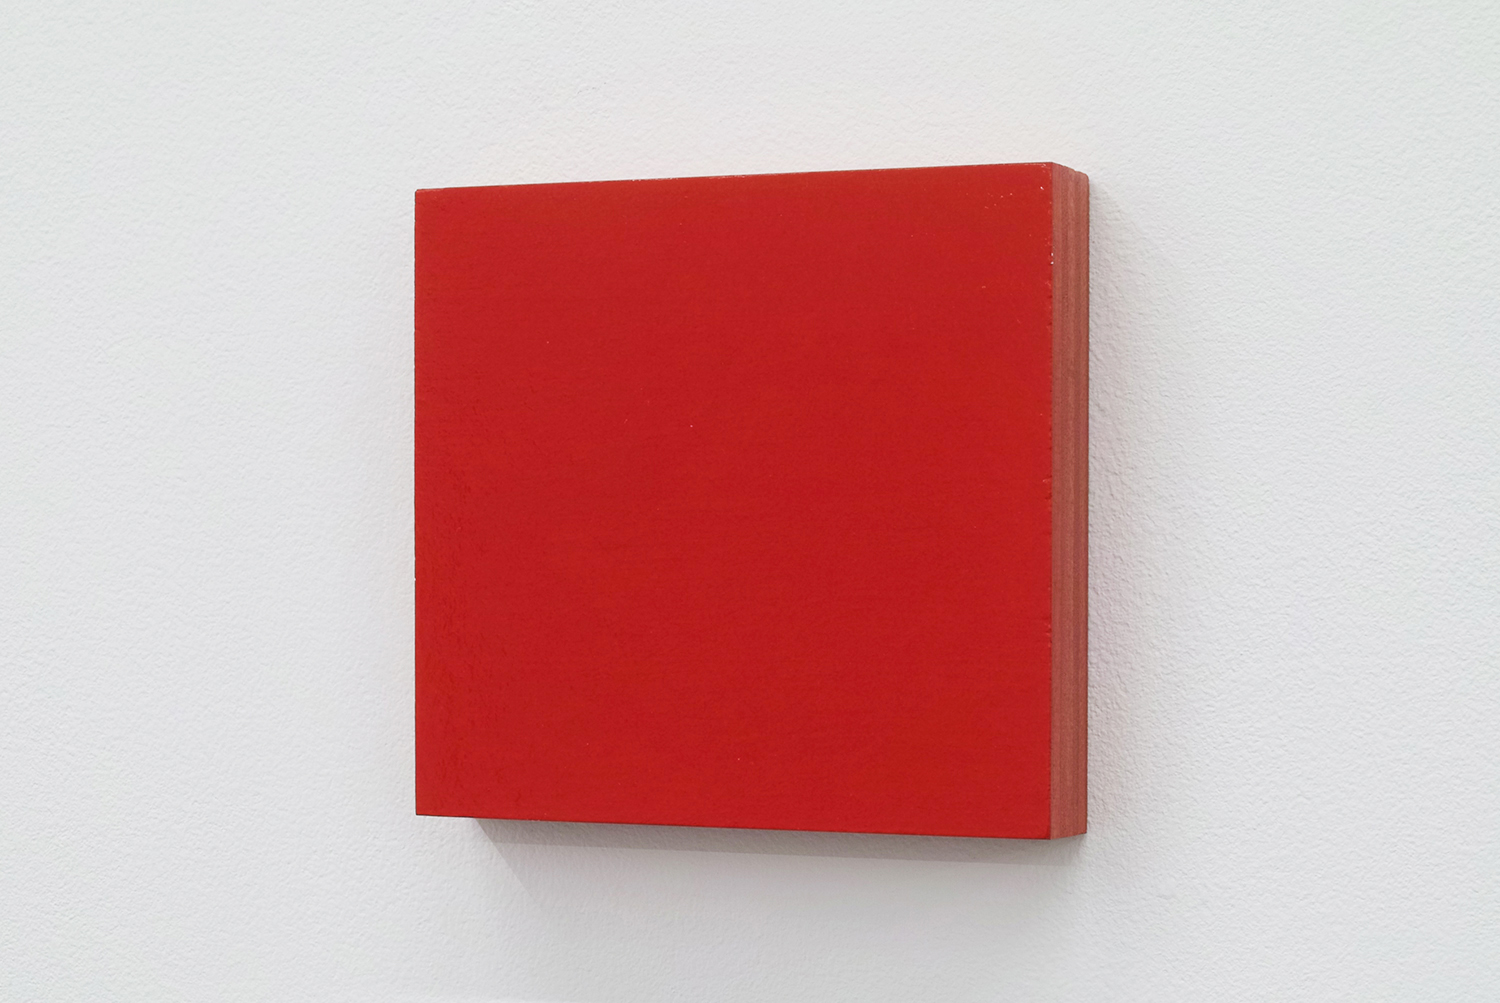 Text No. 265 (untitled red)<br>acrylic on plywood,  100 x 106 x 18 mm,  2002